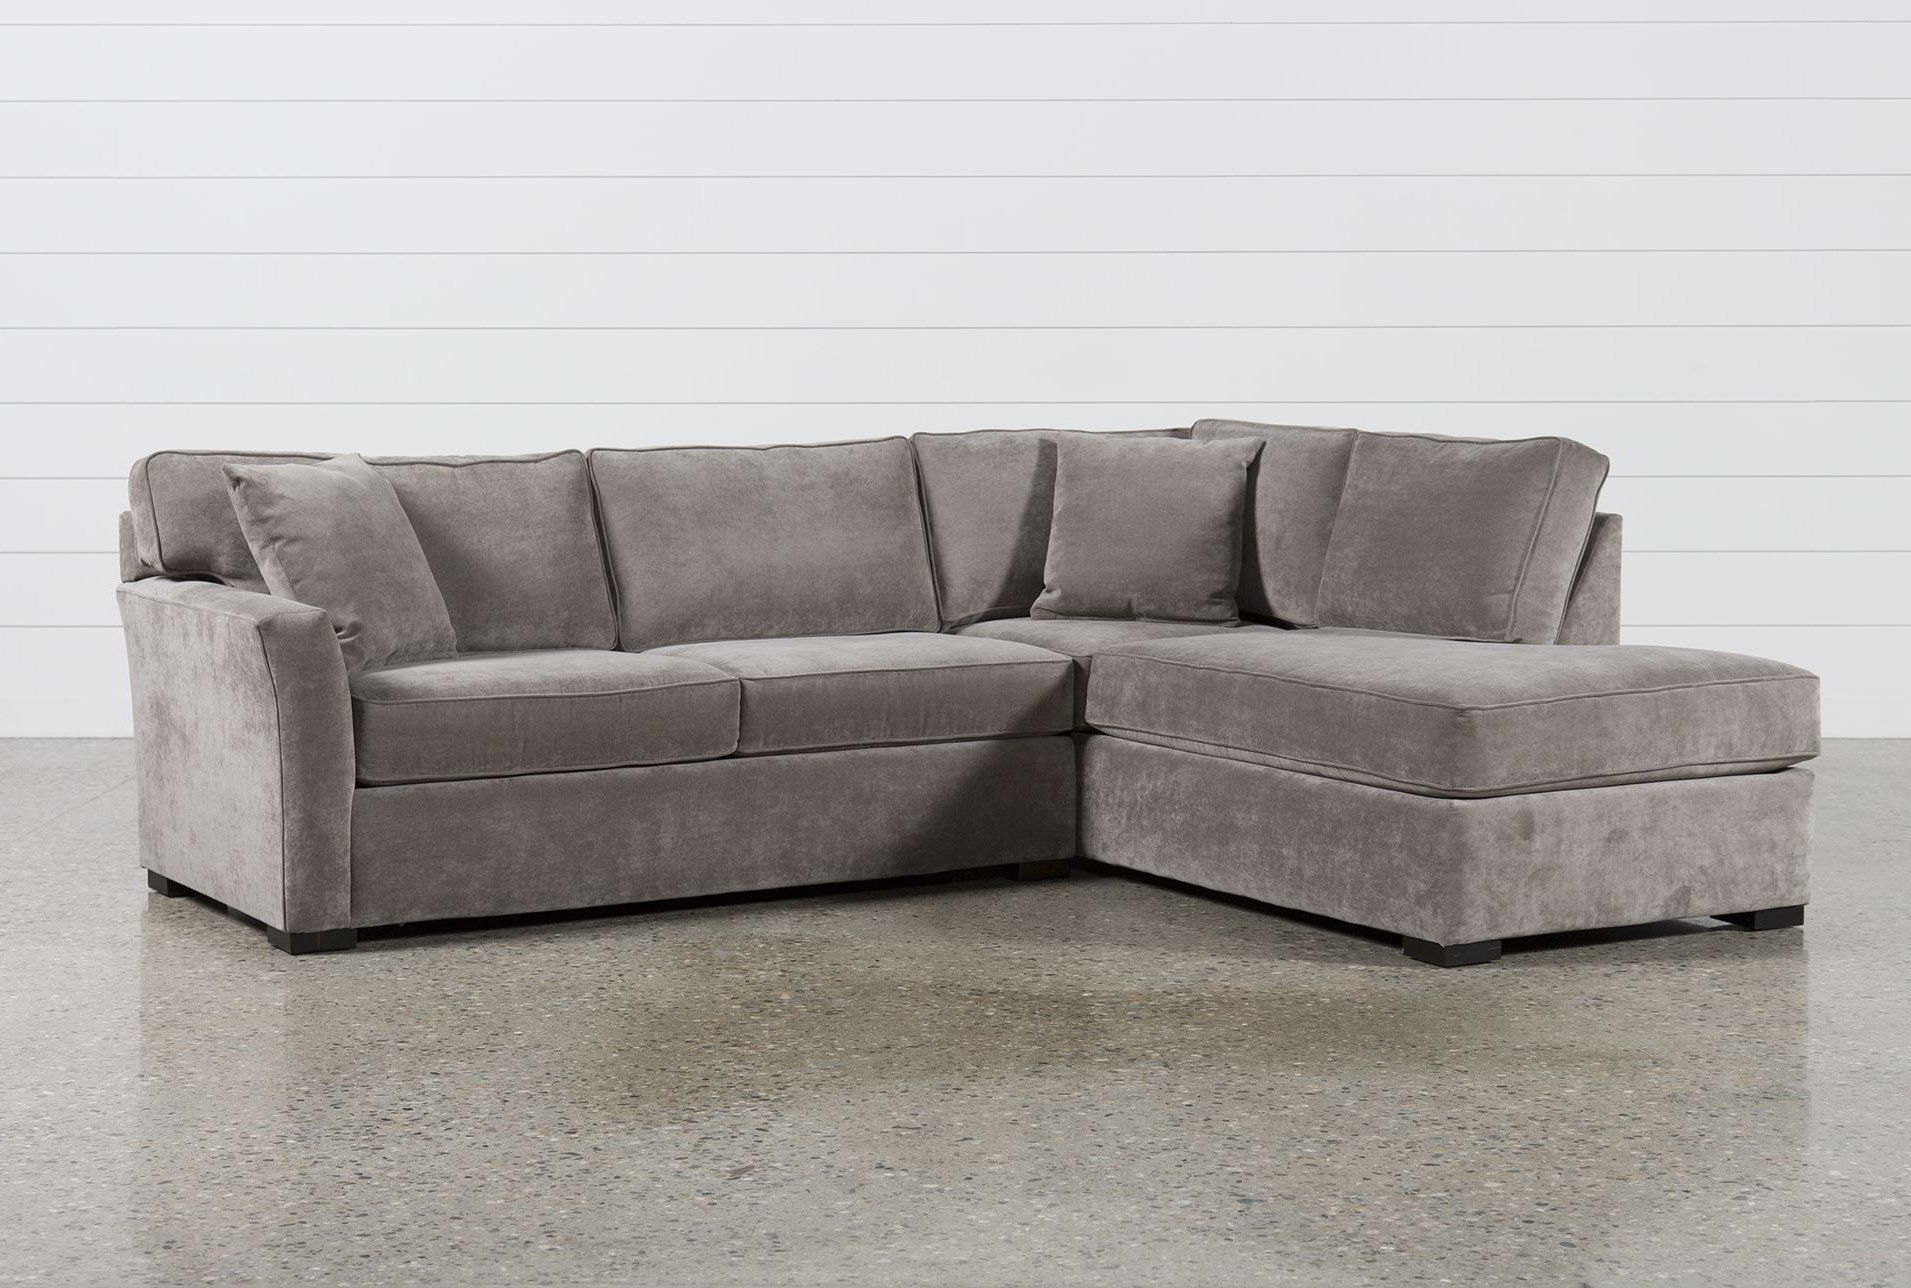 Aspen 2 Piece Sectional W/raf Chaise, Grey, Sofas | Upholstery, Full With Regard To Taren Reversible Sofa/chaise Sleeper Sectionals With Storage Ottoman (View 11 of 25)